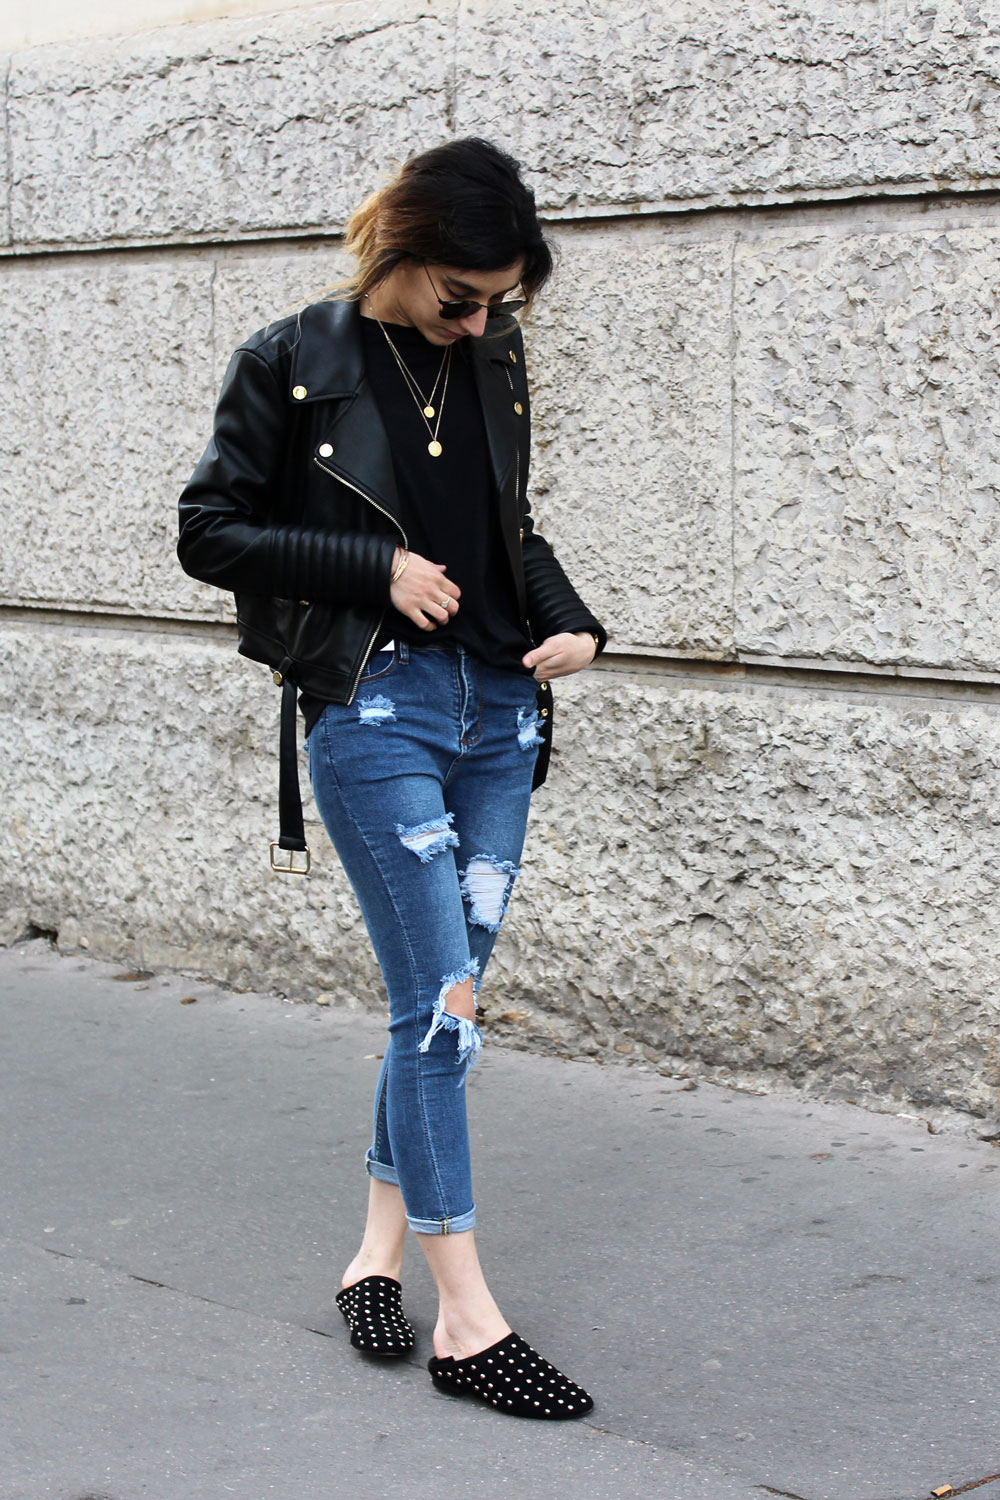 look-perfecto-ivy-revel-jeans-romwe-mocassins-vanessa-wu